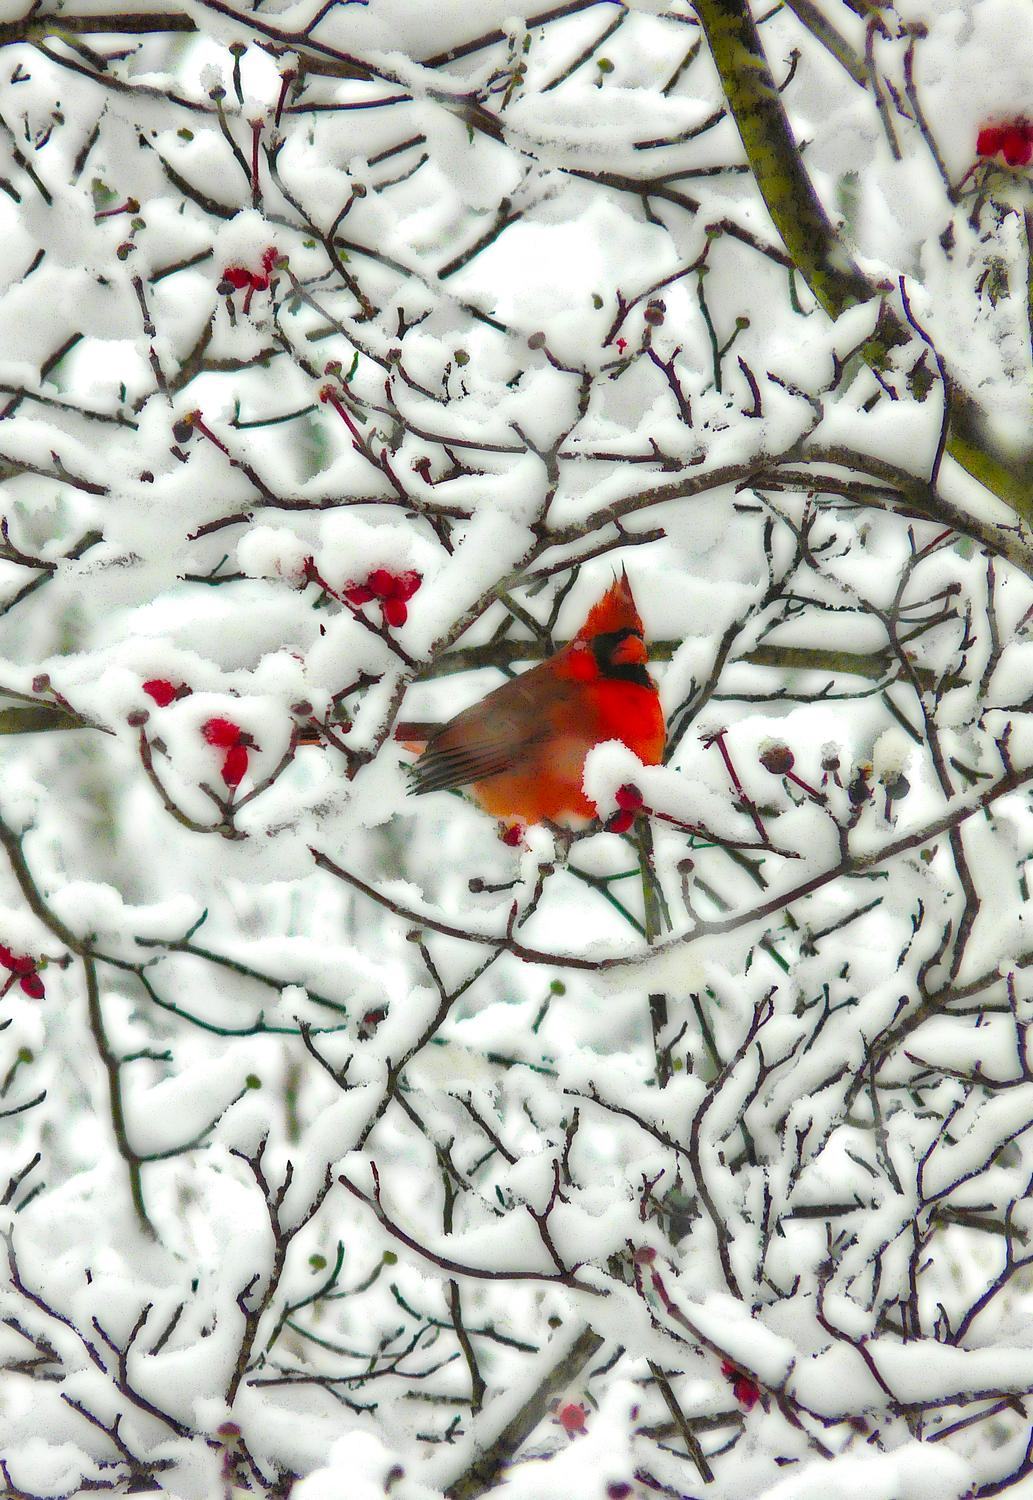 cardinal all puffed up in a snowy tree-  Panasonic DMC-FZ18 - Mr. Cardinal, all puffed up, trying to stay warm. - - art  - photography - by Tony Karp